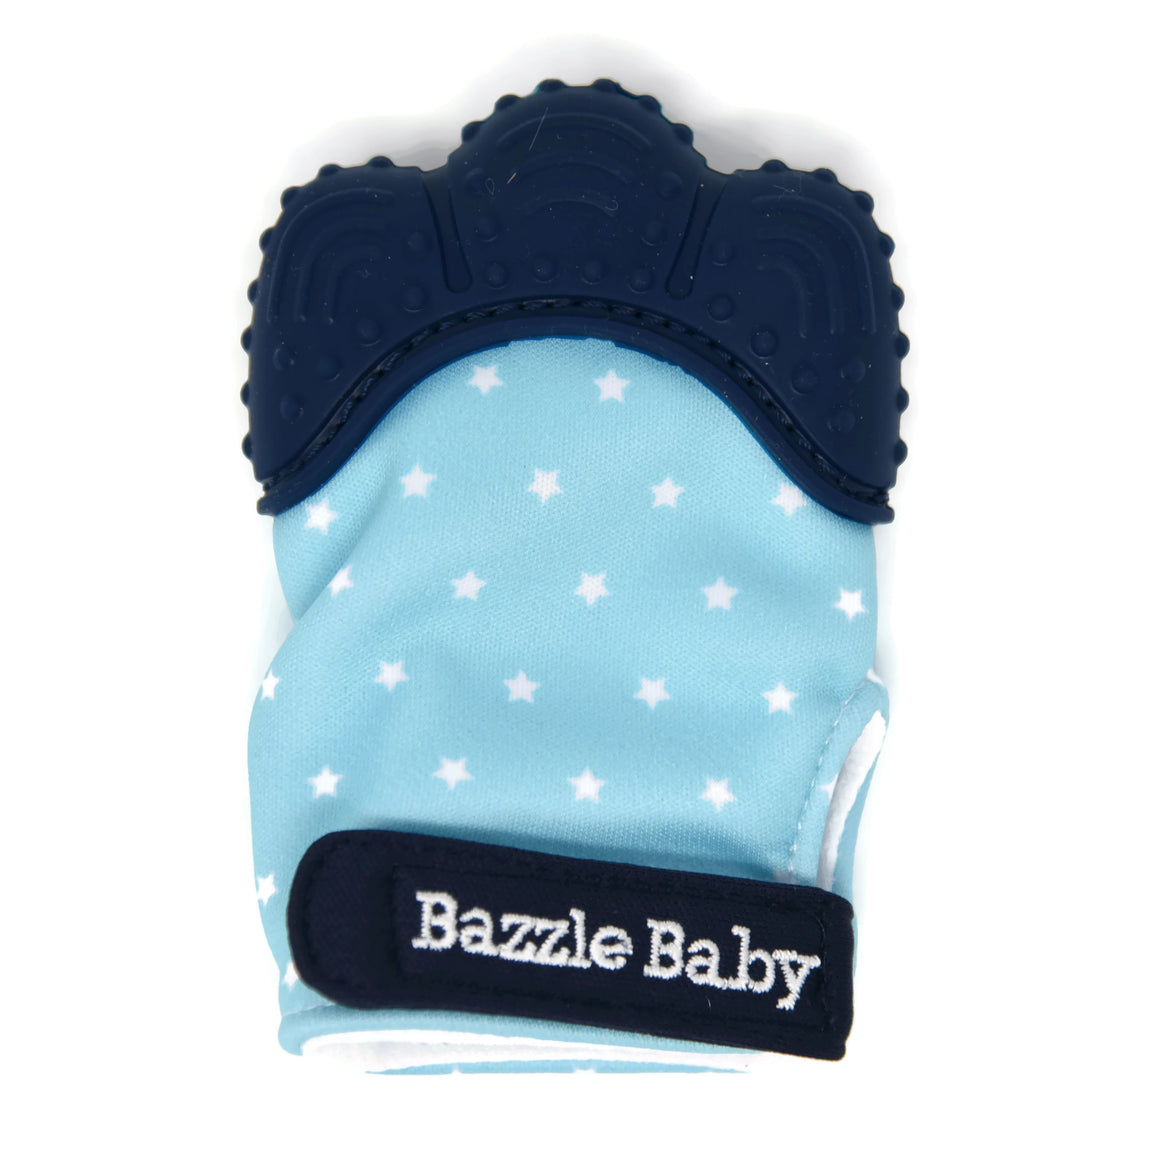 Baby girl wearing the Star on Pink Chew Mitt. Bazzle Baby Chew Mitt is a BPA free, silicone soother mitt to help provide natural pain relief. The bodyof the mitt is polyester and has a crinkly texture to add additional stimulation for baby. Adjustable velcro allows the bib to grow with baby, and keeps the mitt from falling off baby's hand to help keep it clean. Designed for baby girls. Style includes a pink shaft with white stars and grey silicone top and velcro strap.